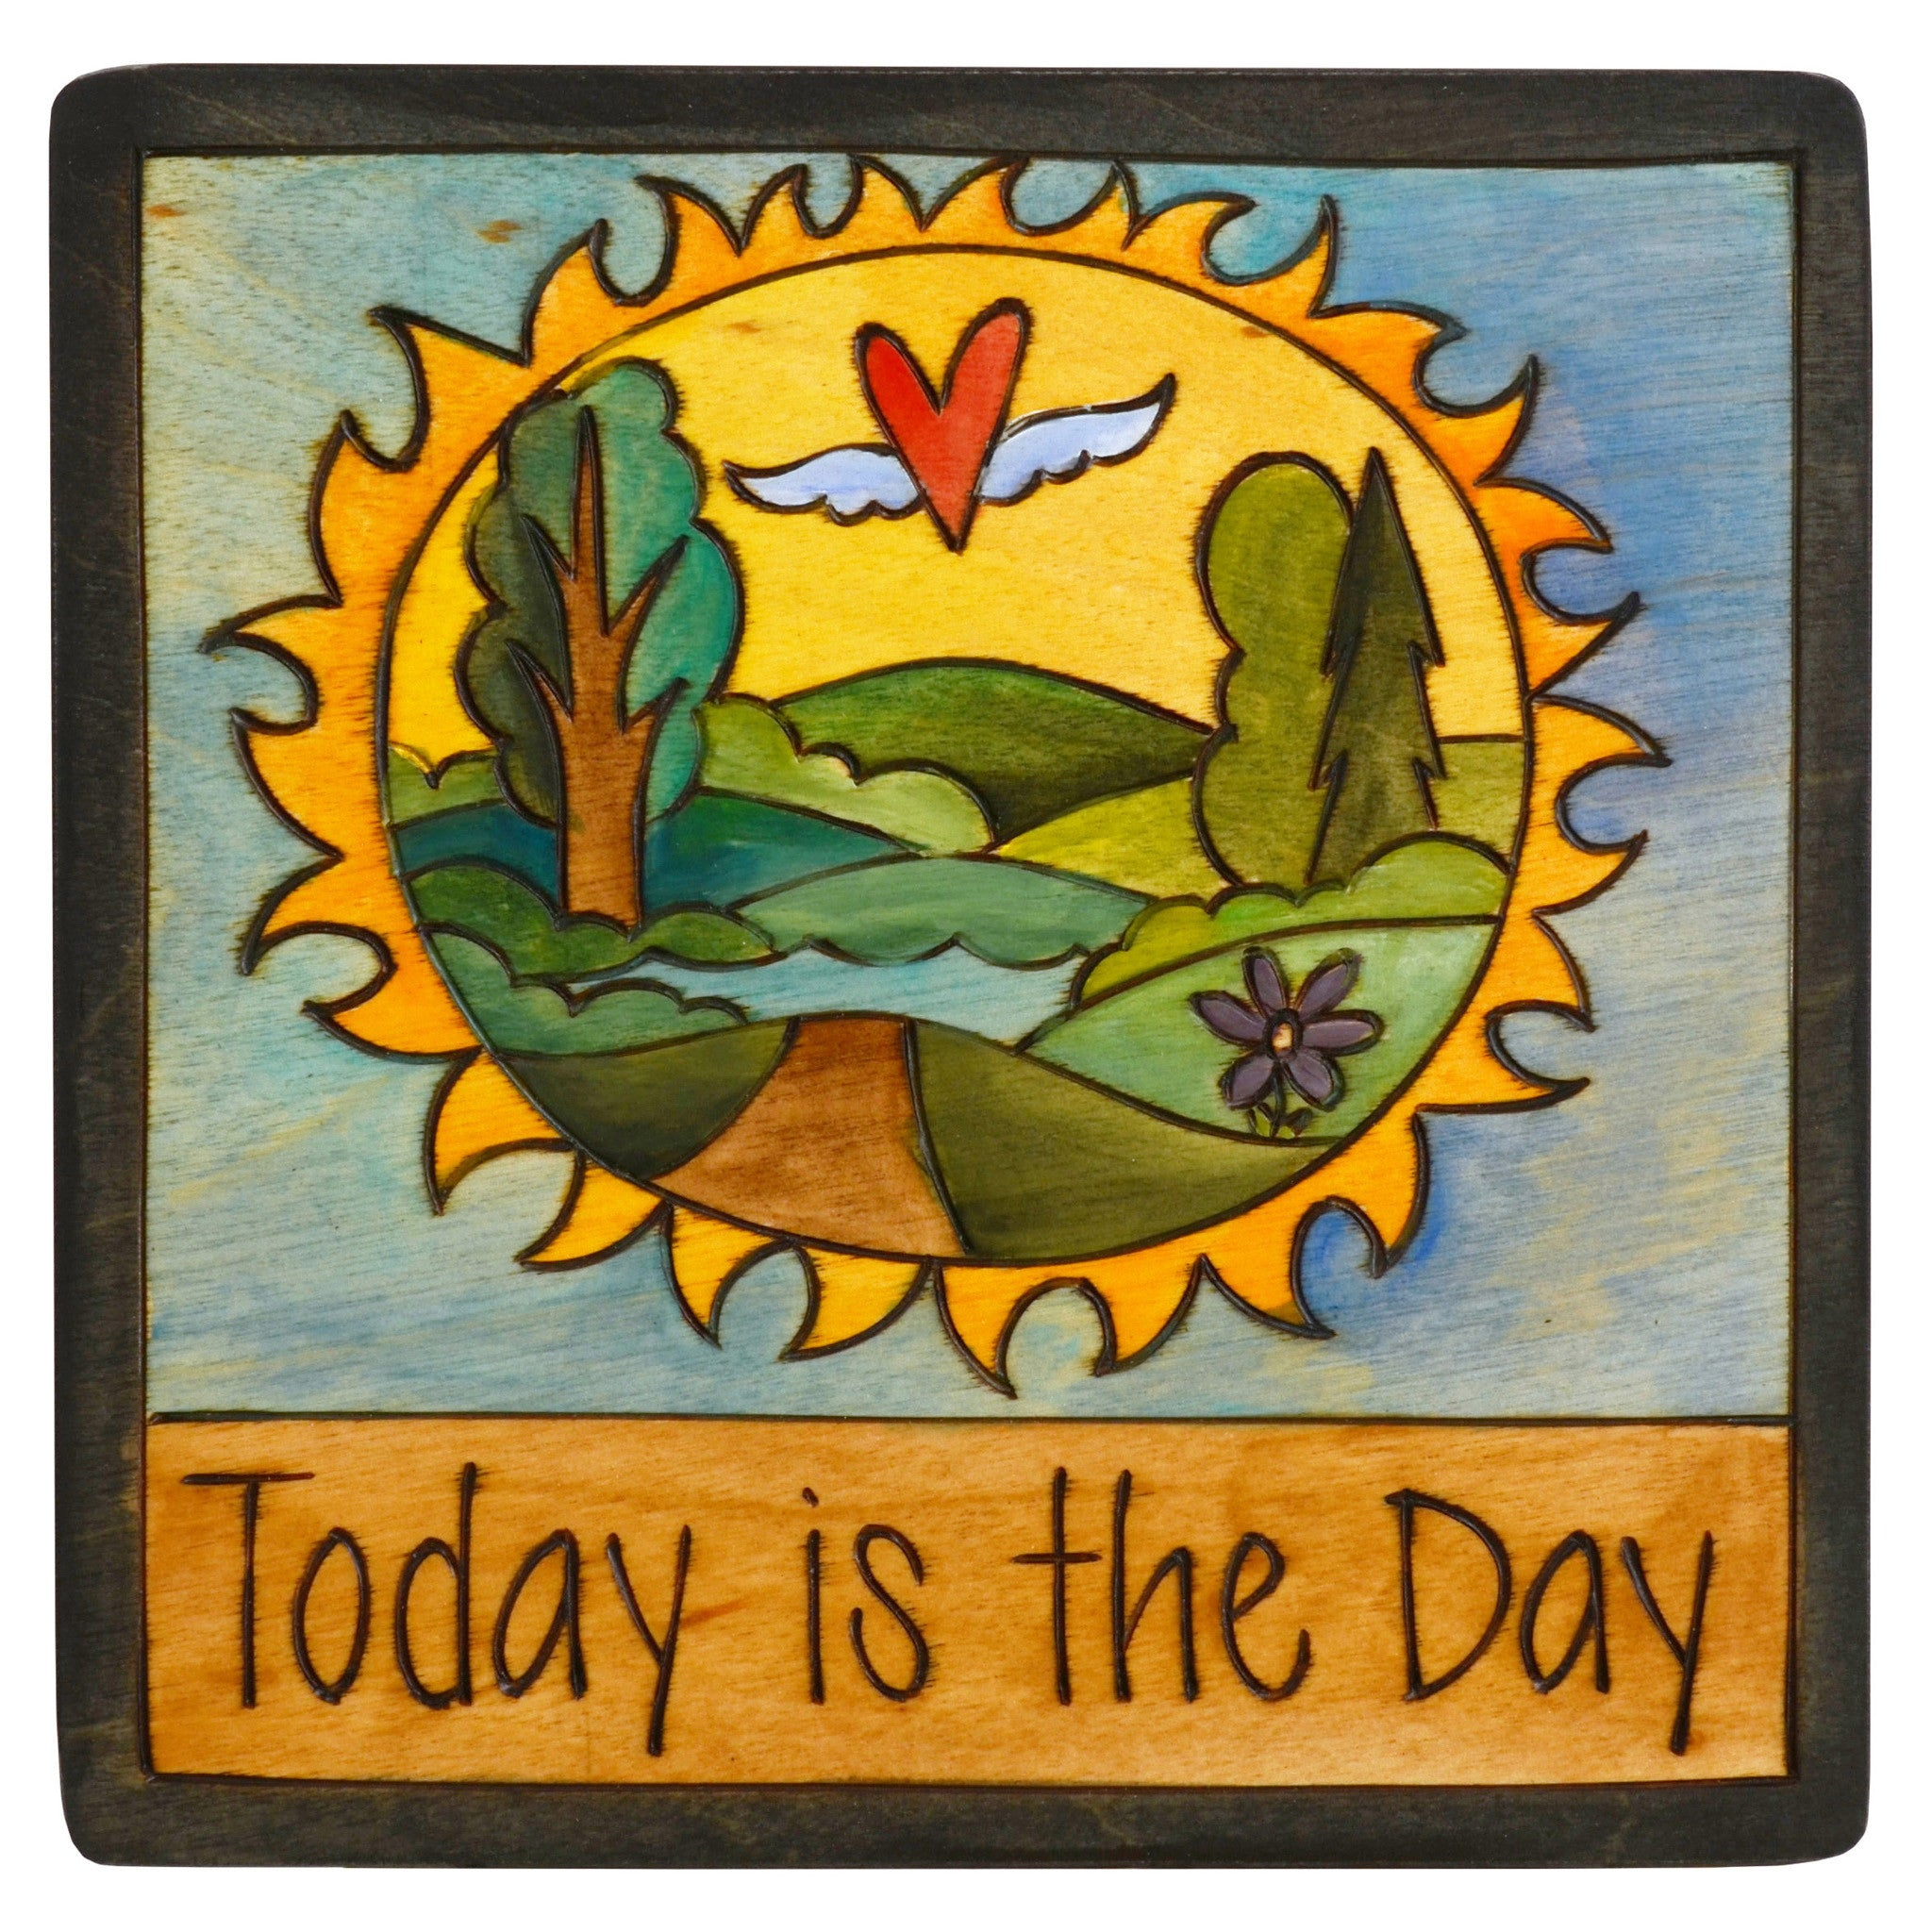 Sticks Plaque Today is the Day PLQ001-D700410 Wall Art, Artisan ...